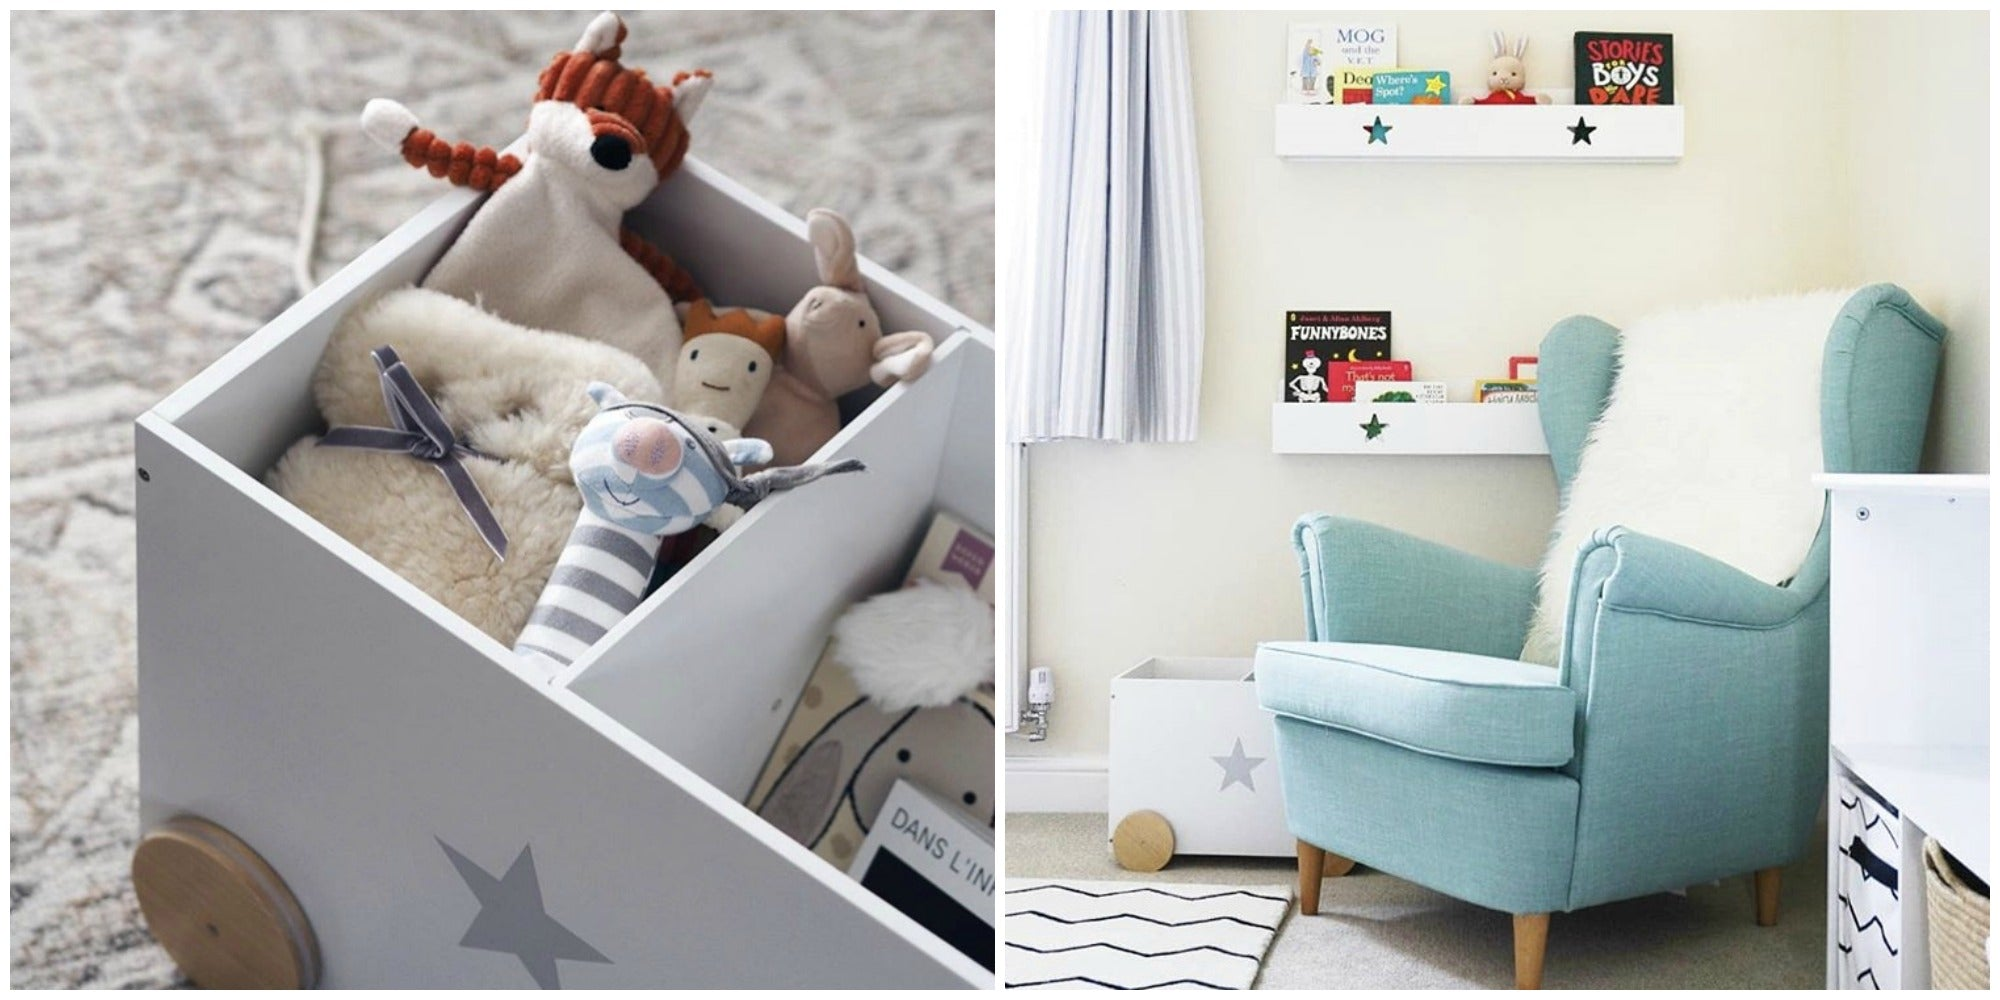 #MyGLTC: No Playroom? No Problem!